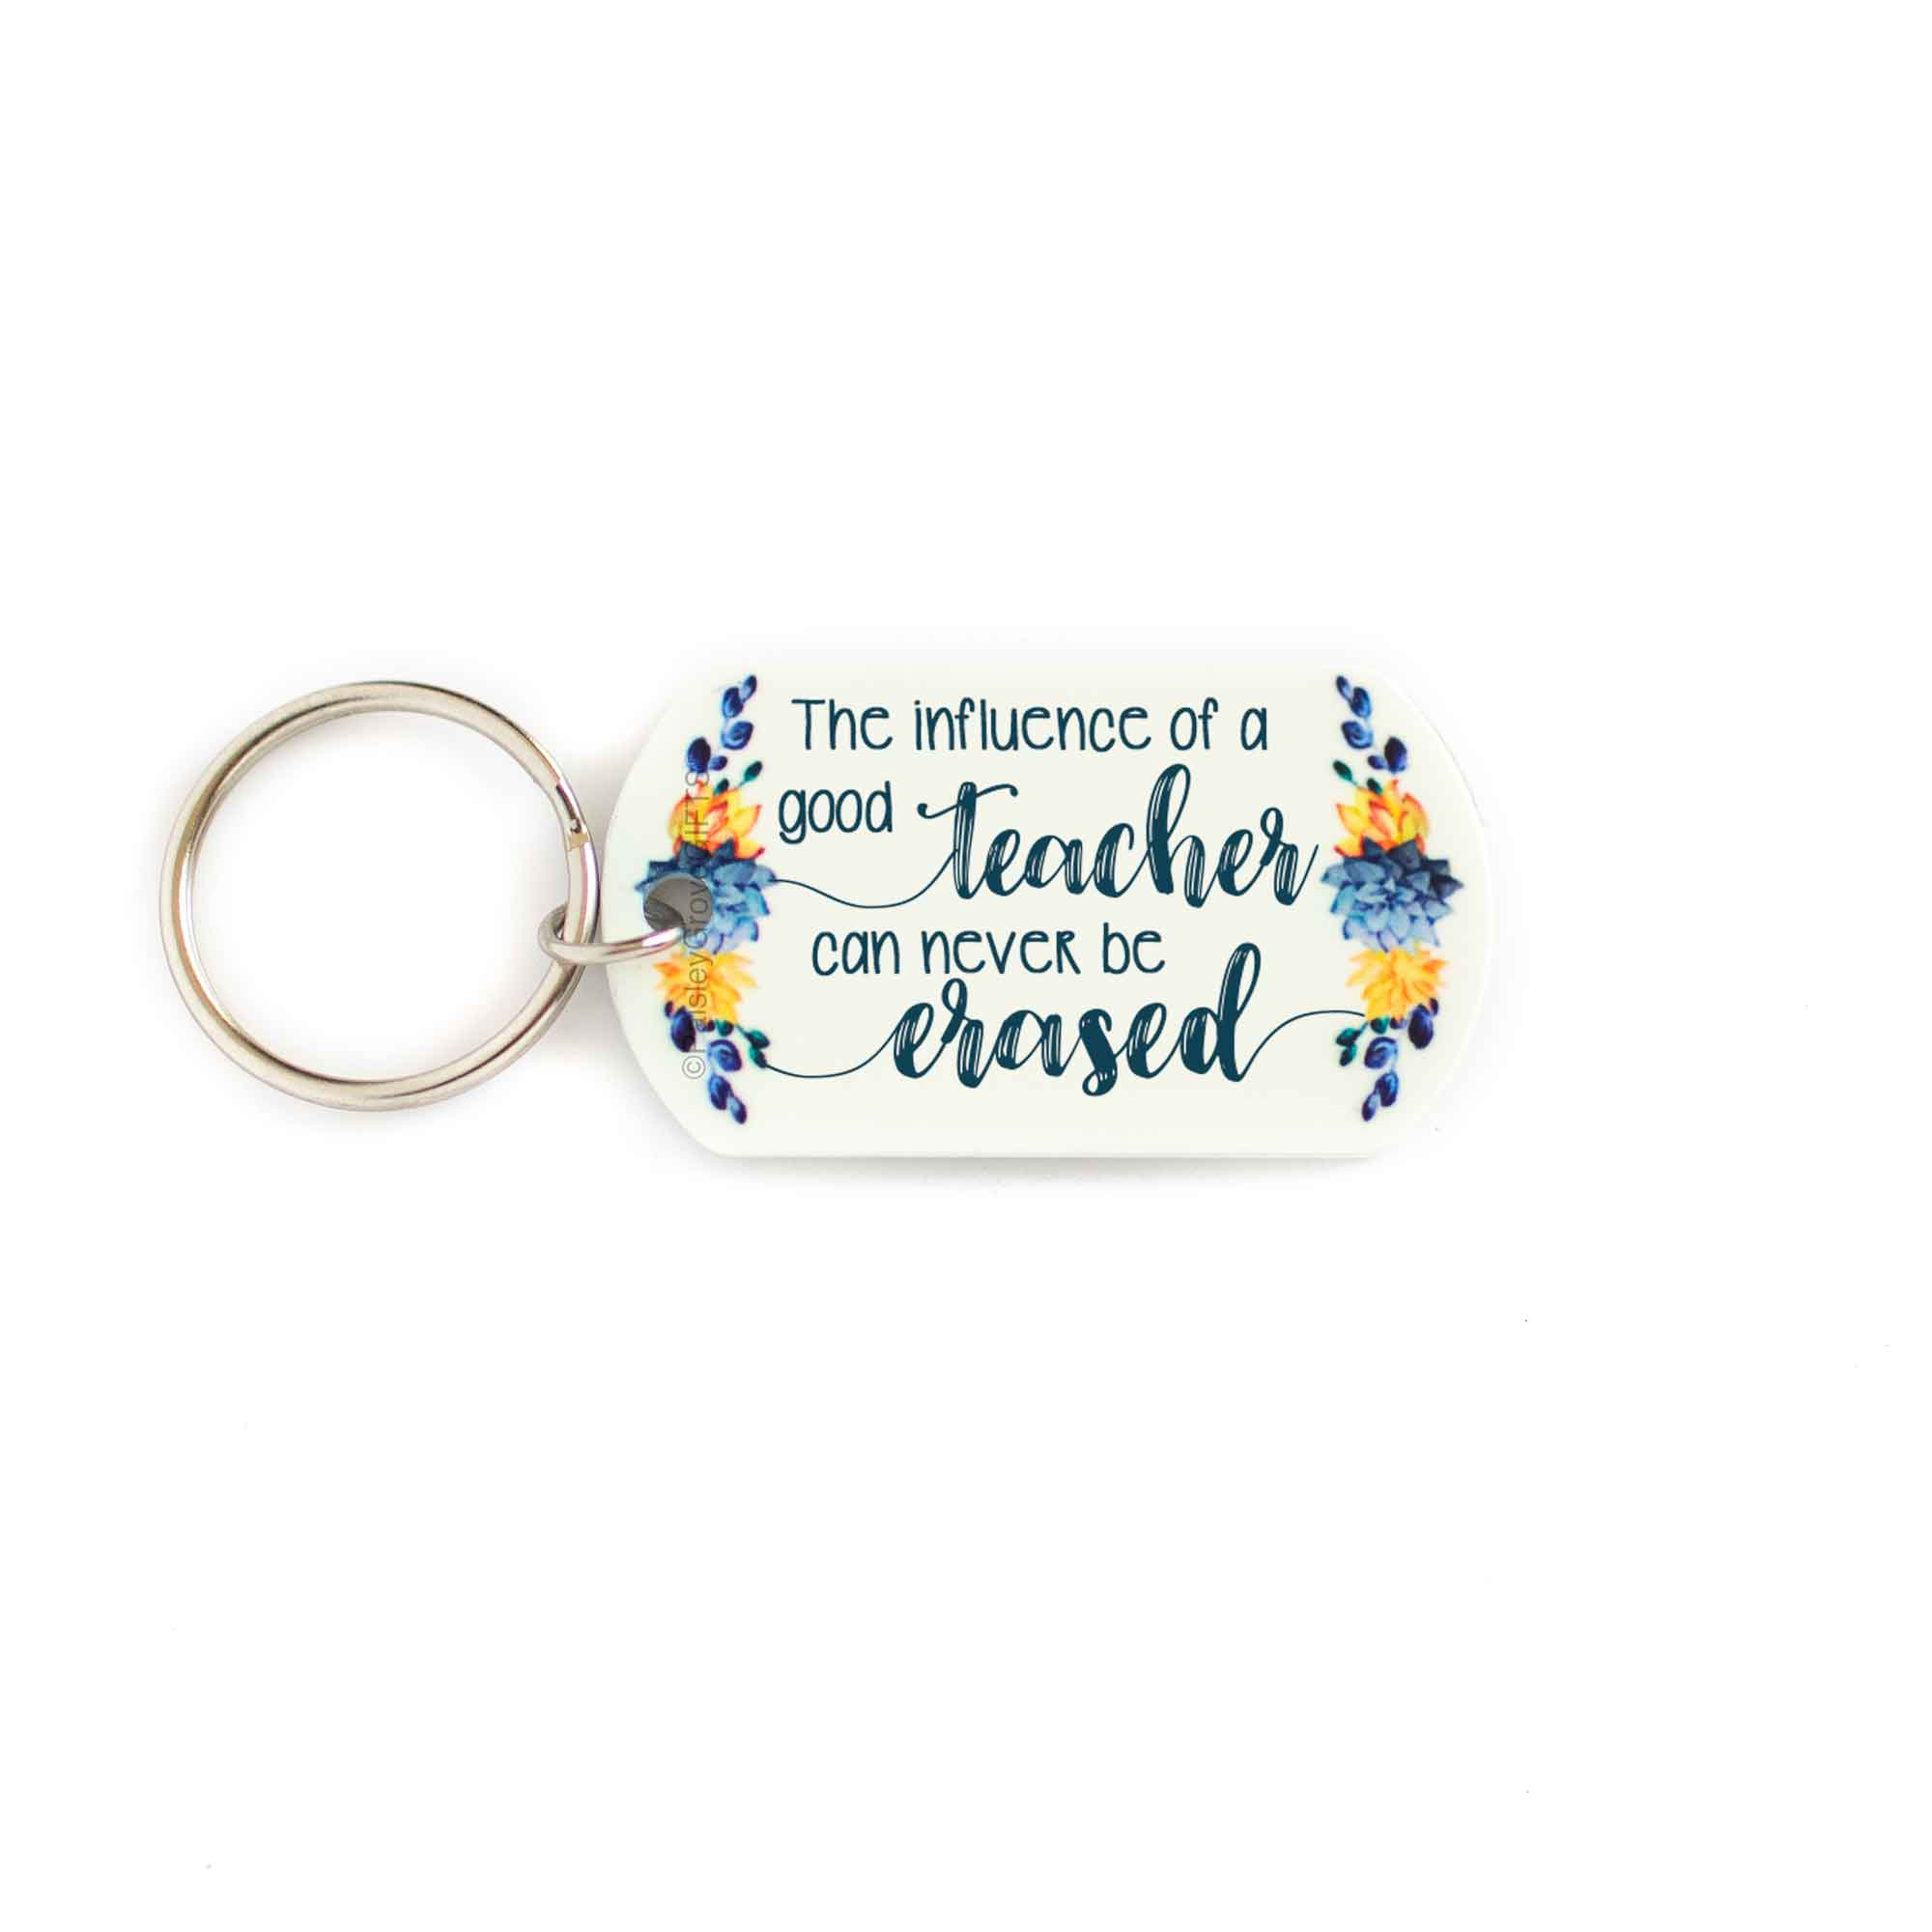 CopyrightPaisleyGroveGIFTS S005c Sentimental teacher keychain with teal succulent cactus design